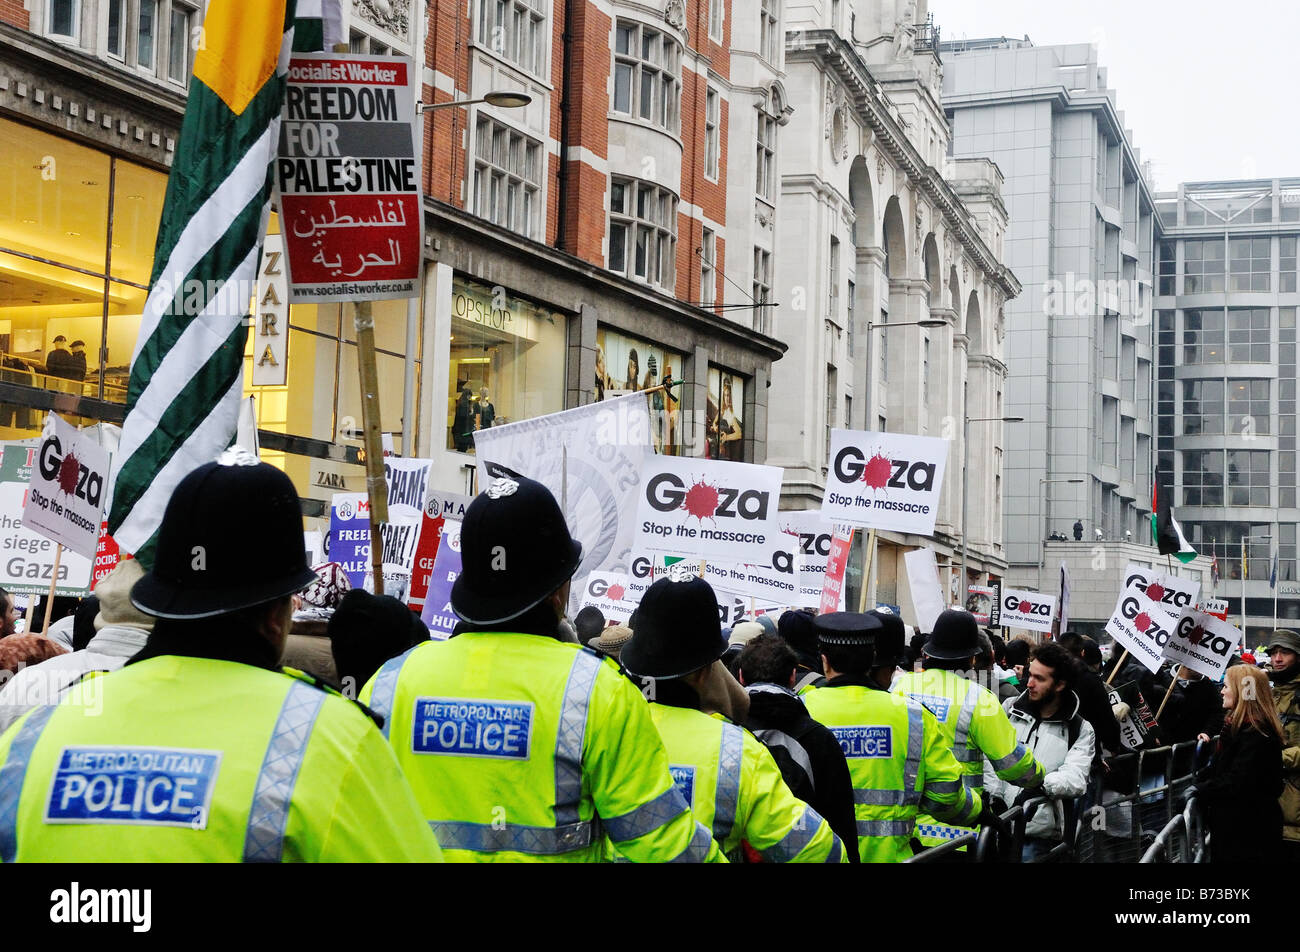 Anti-Israel Gaza massacre protesters march past the Israel Embassy, London, UK - Stock Image